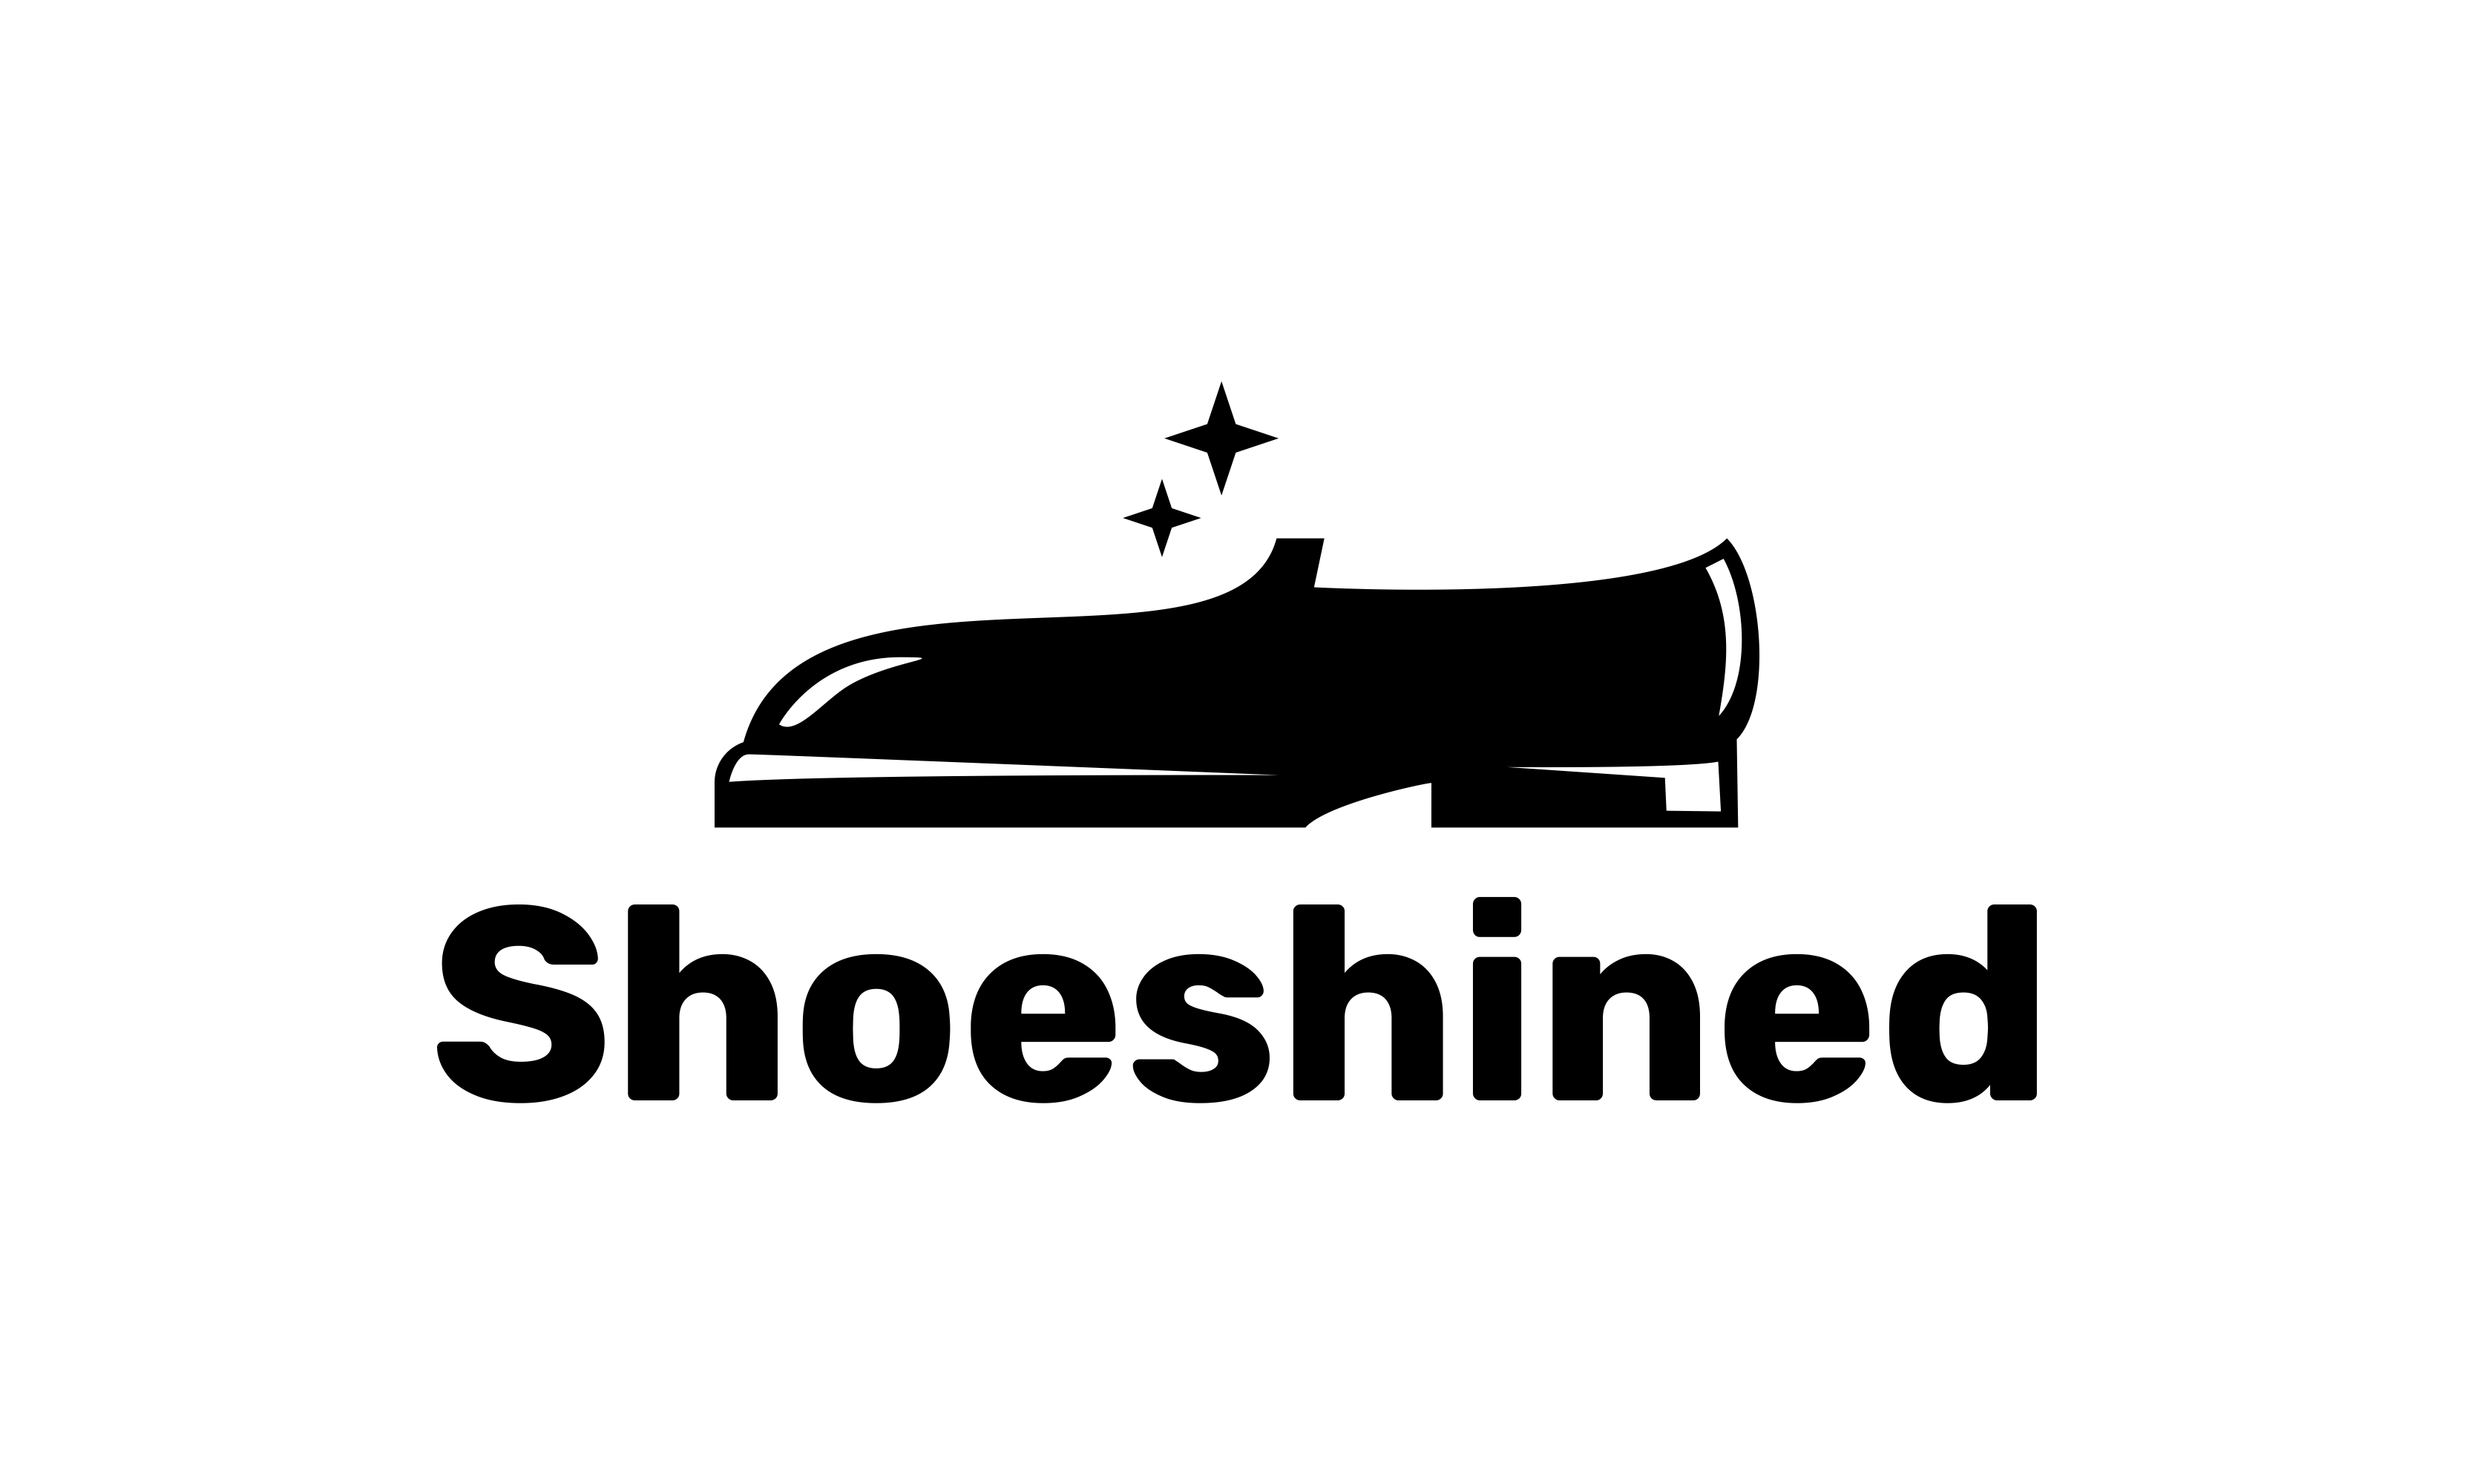 Shoeshined